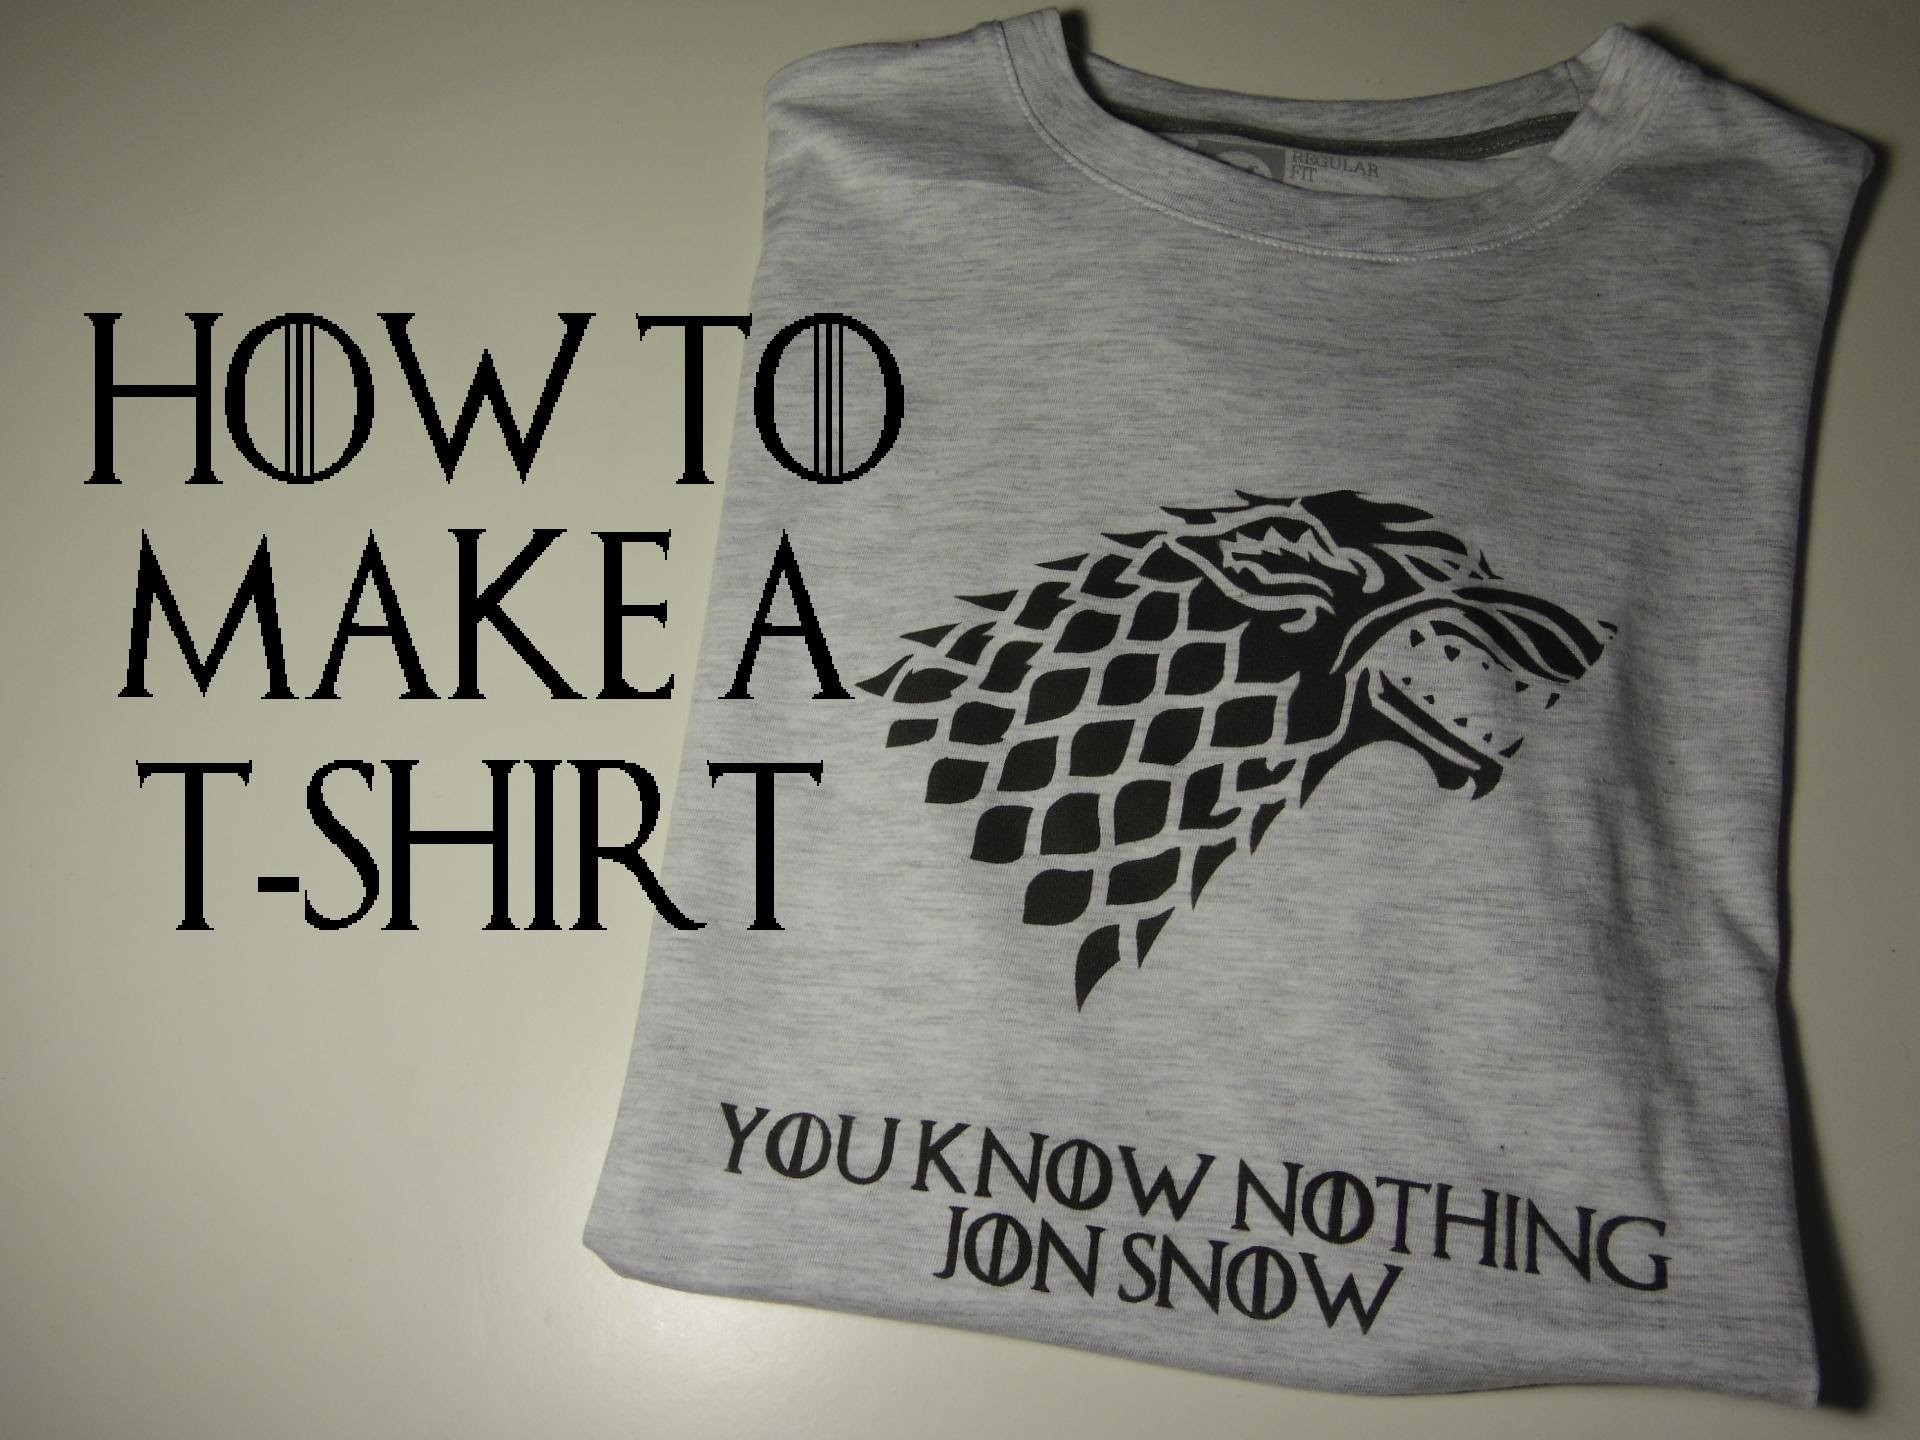 How to make a Game of Thrones T shirt